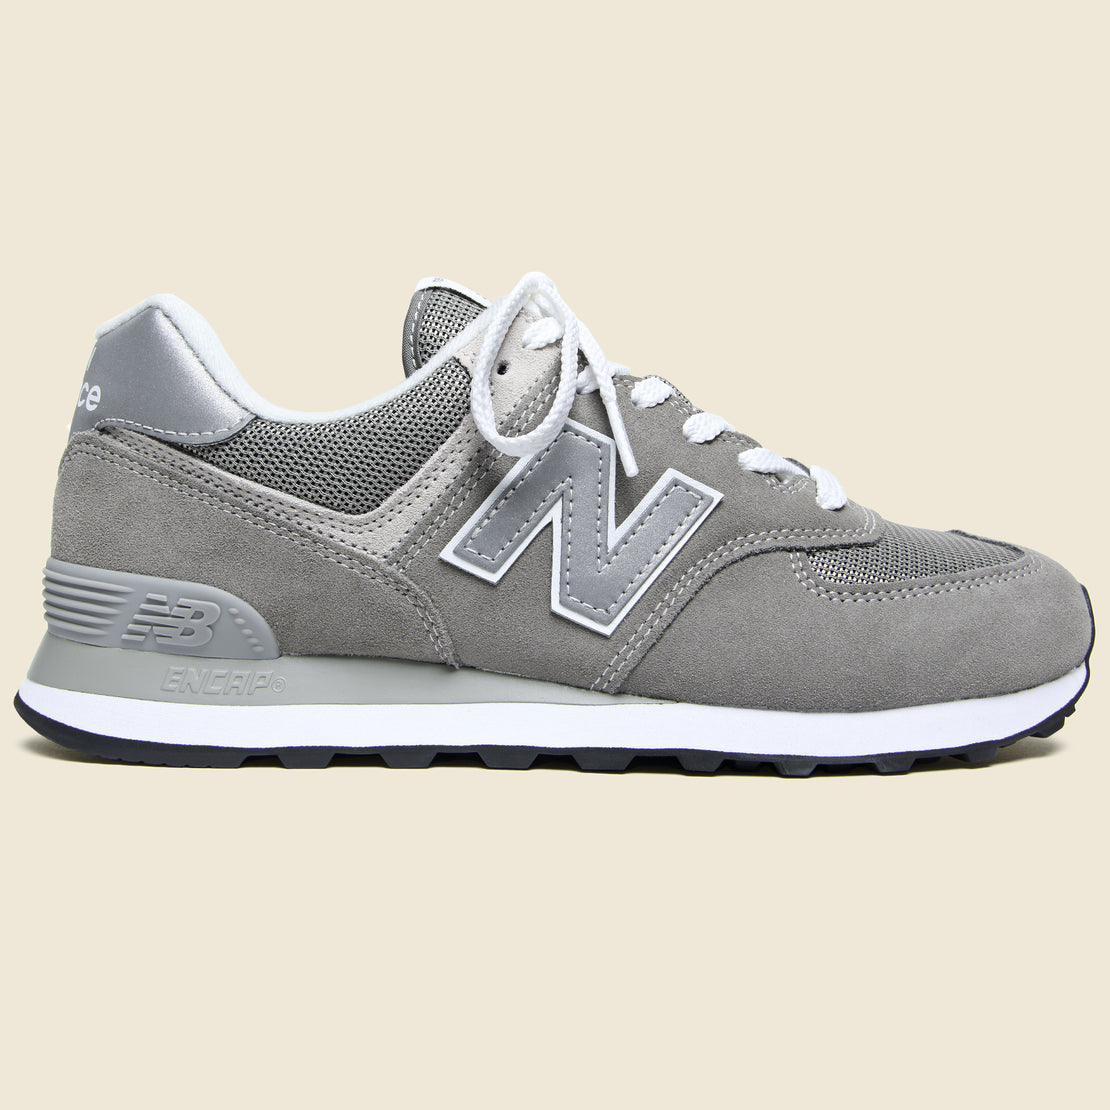 New Balance 574 Sneaker - Grey